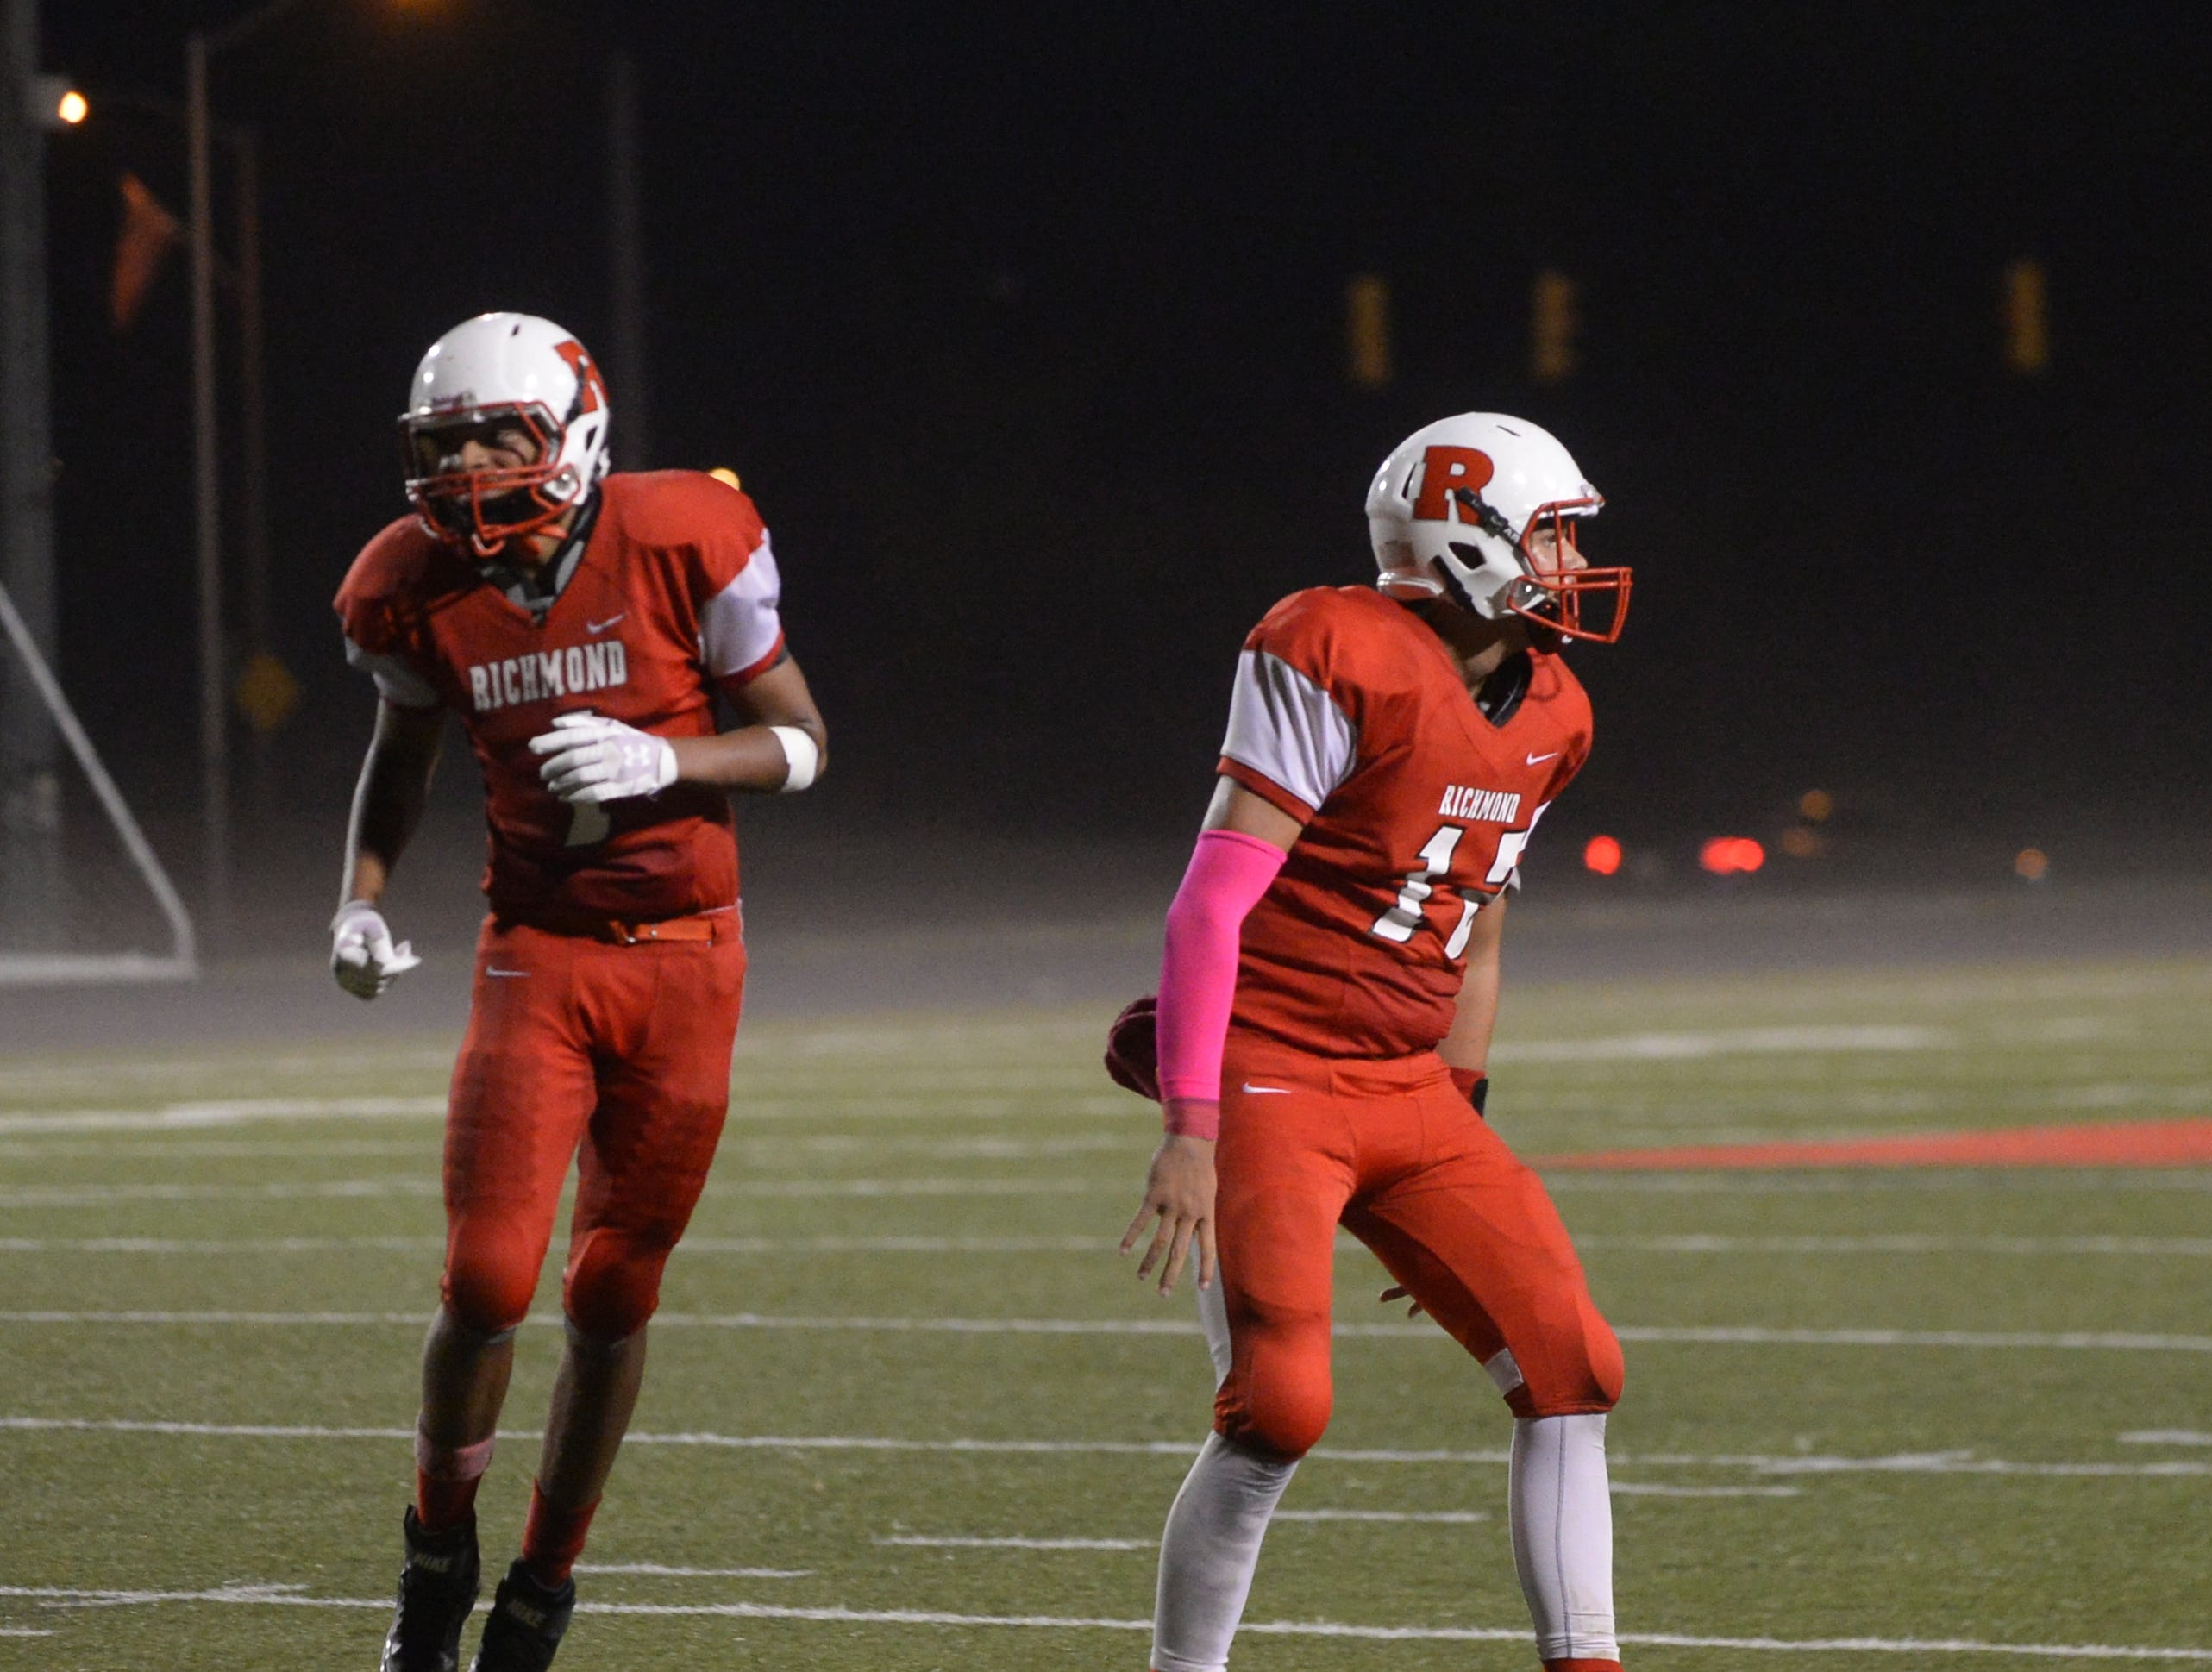 Richmond's Treshawn Jones (1) and Zach Hill (12) celebrate during the Richmond High School football team's  27-26 loss to Anderson Friday, Oct. 5, 2018 at Lyboult Field.